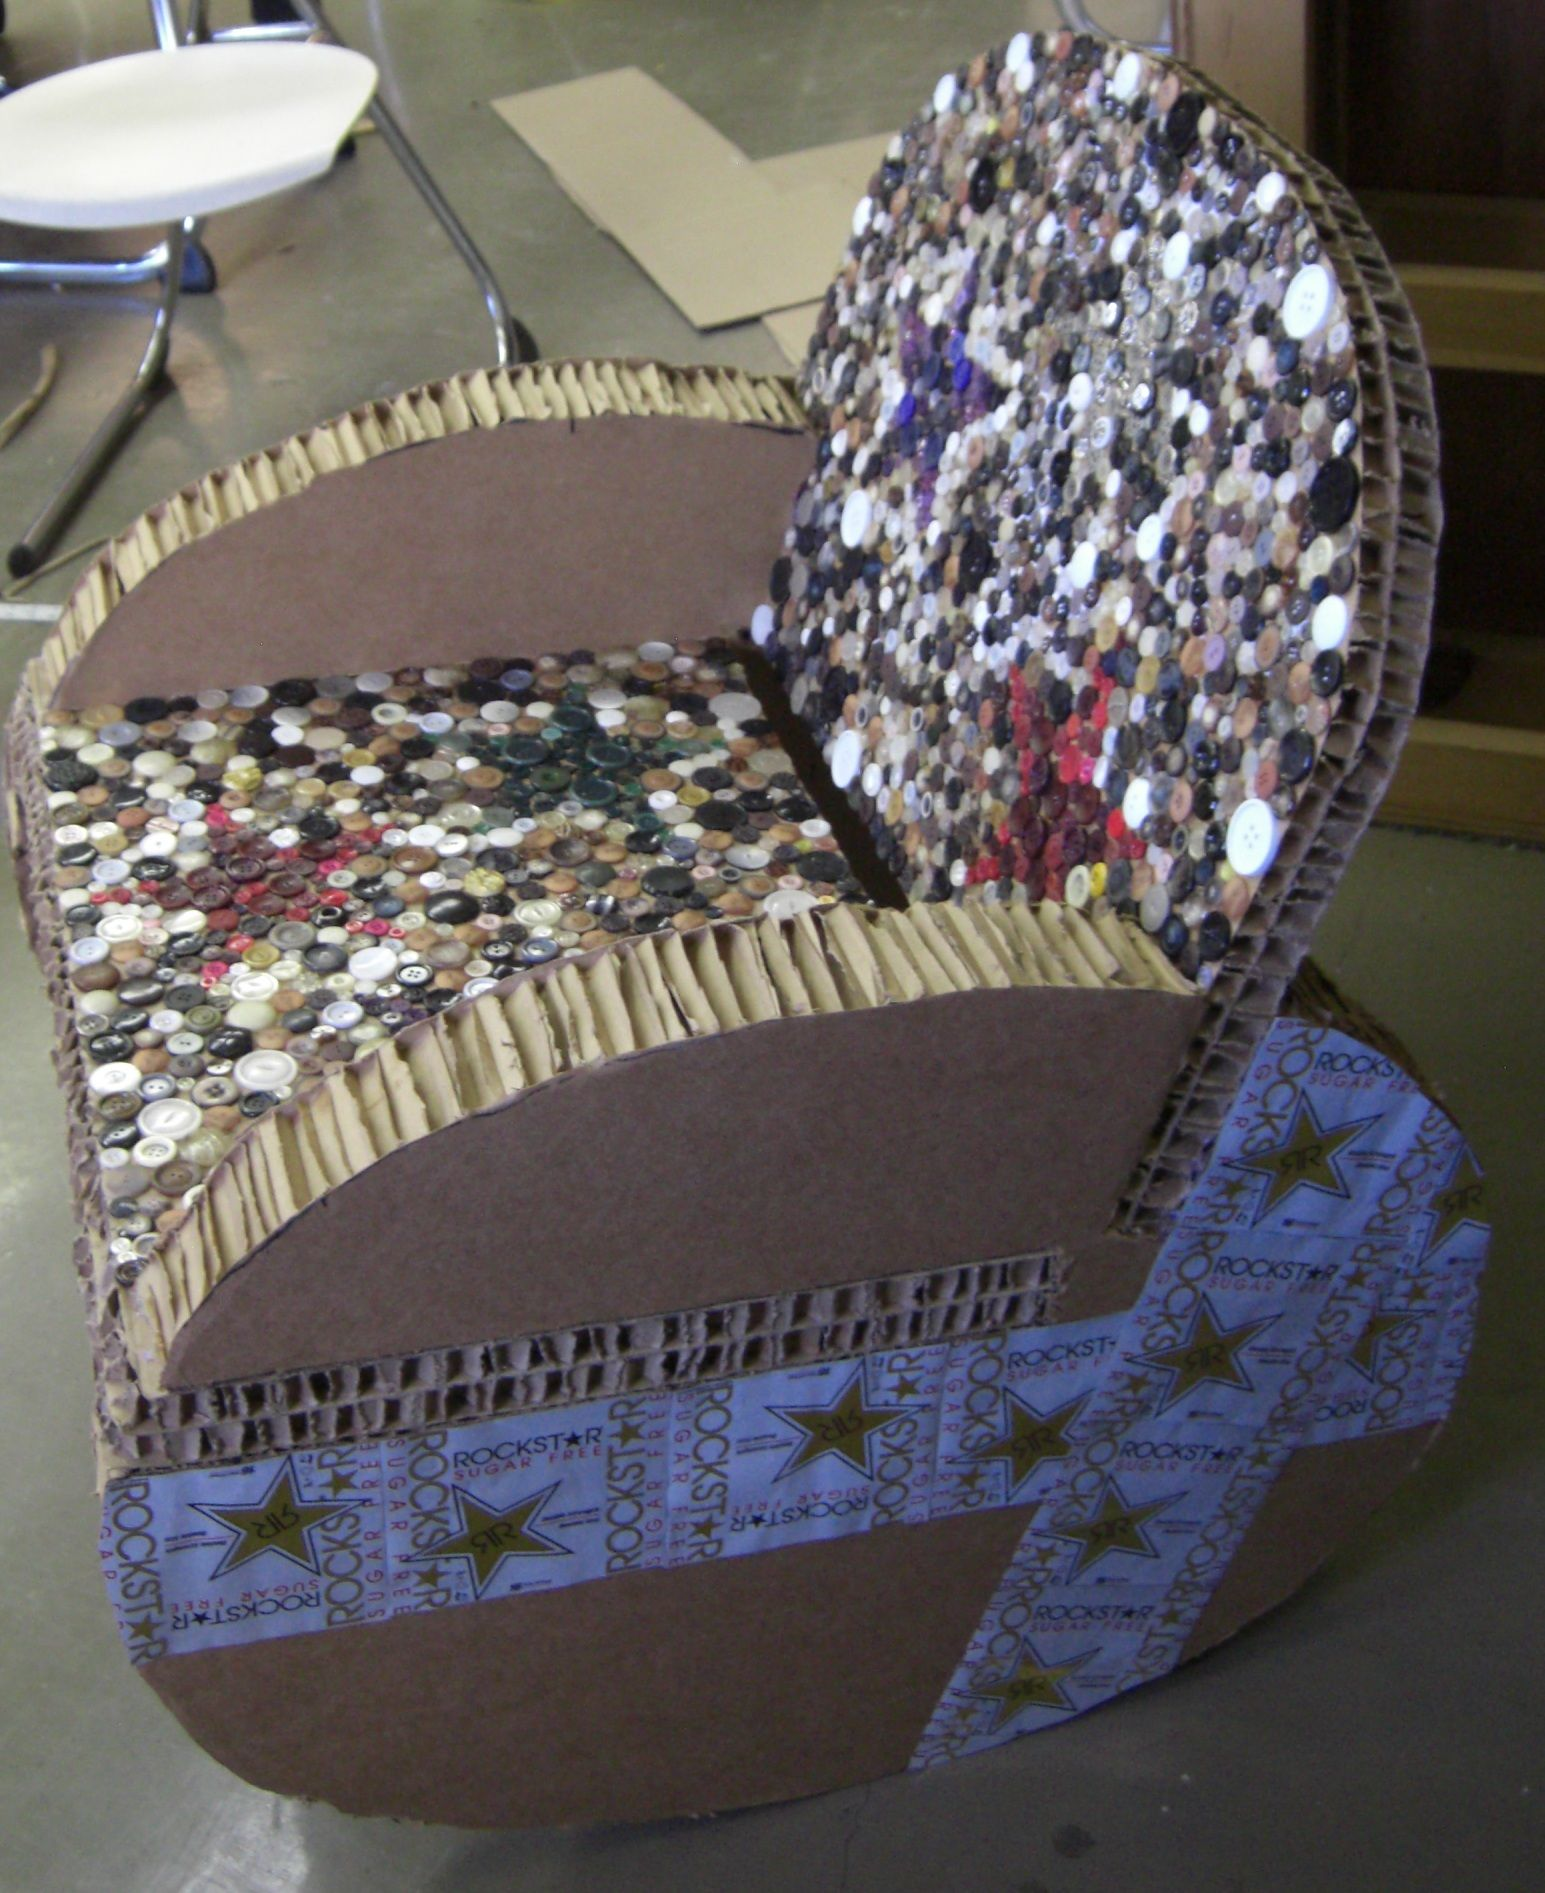 Cardboard rocking chair - Cardboard Rocking Chair With 1800 Individually Placed Buttons For Upholstery Created For A Competition